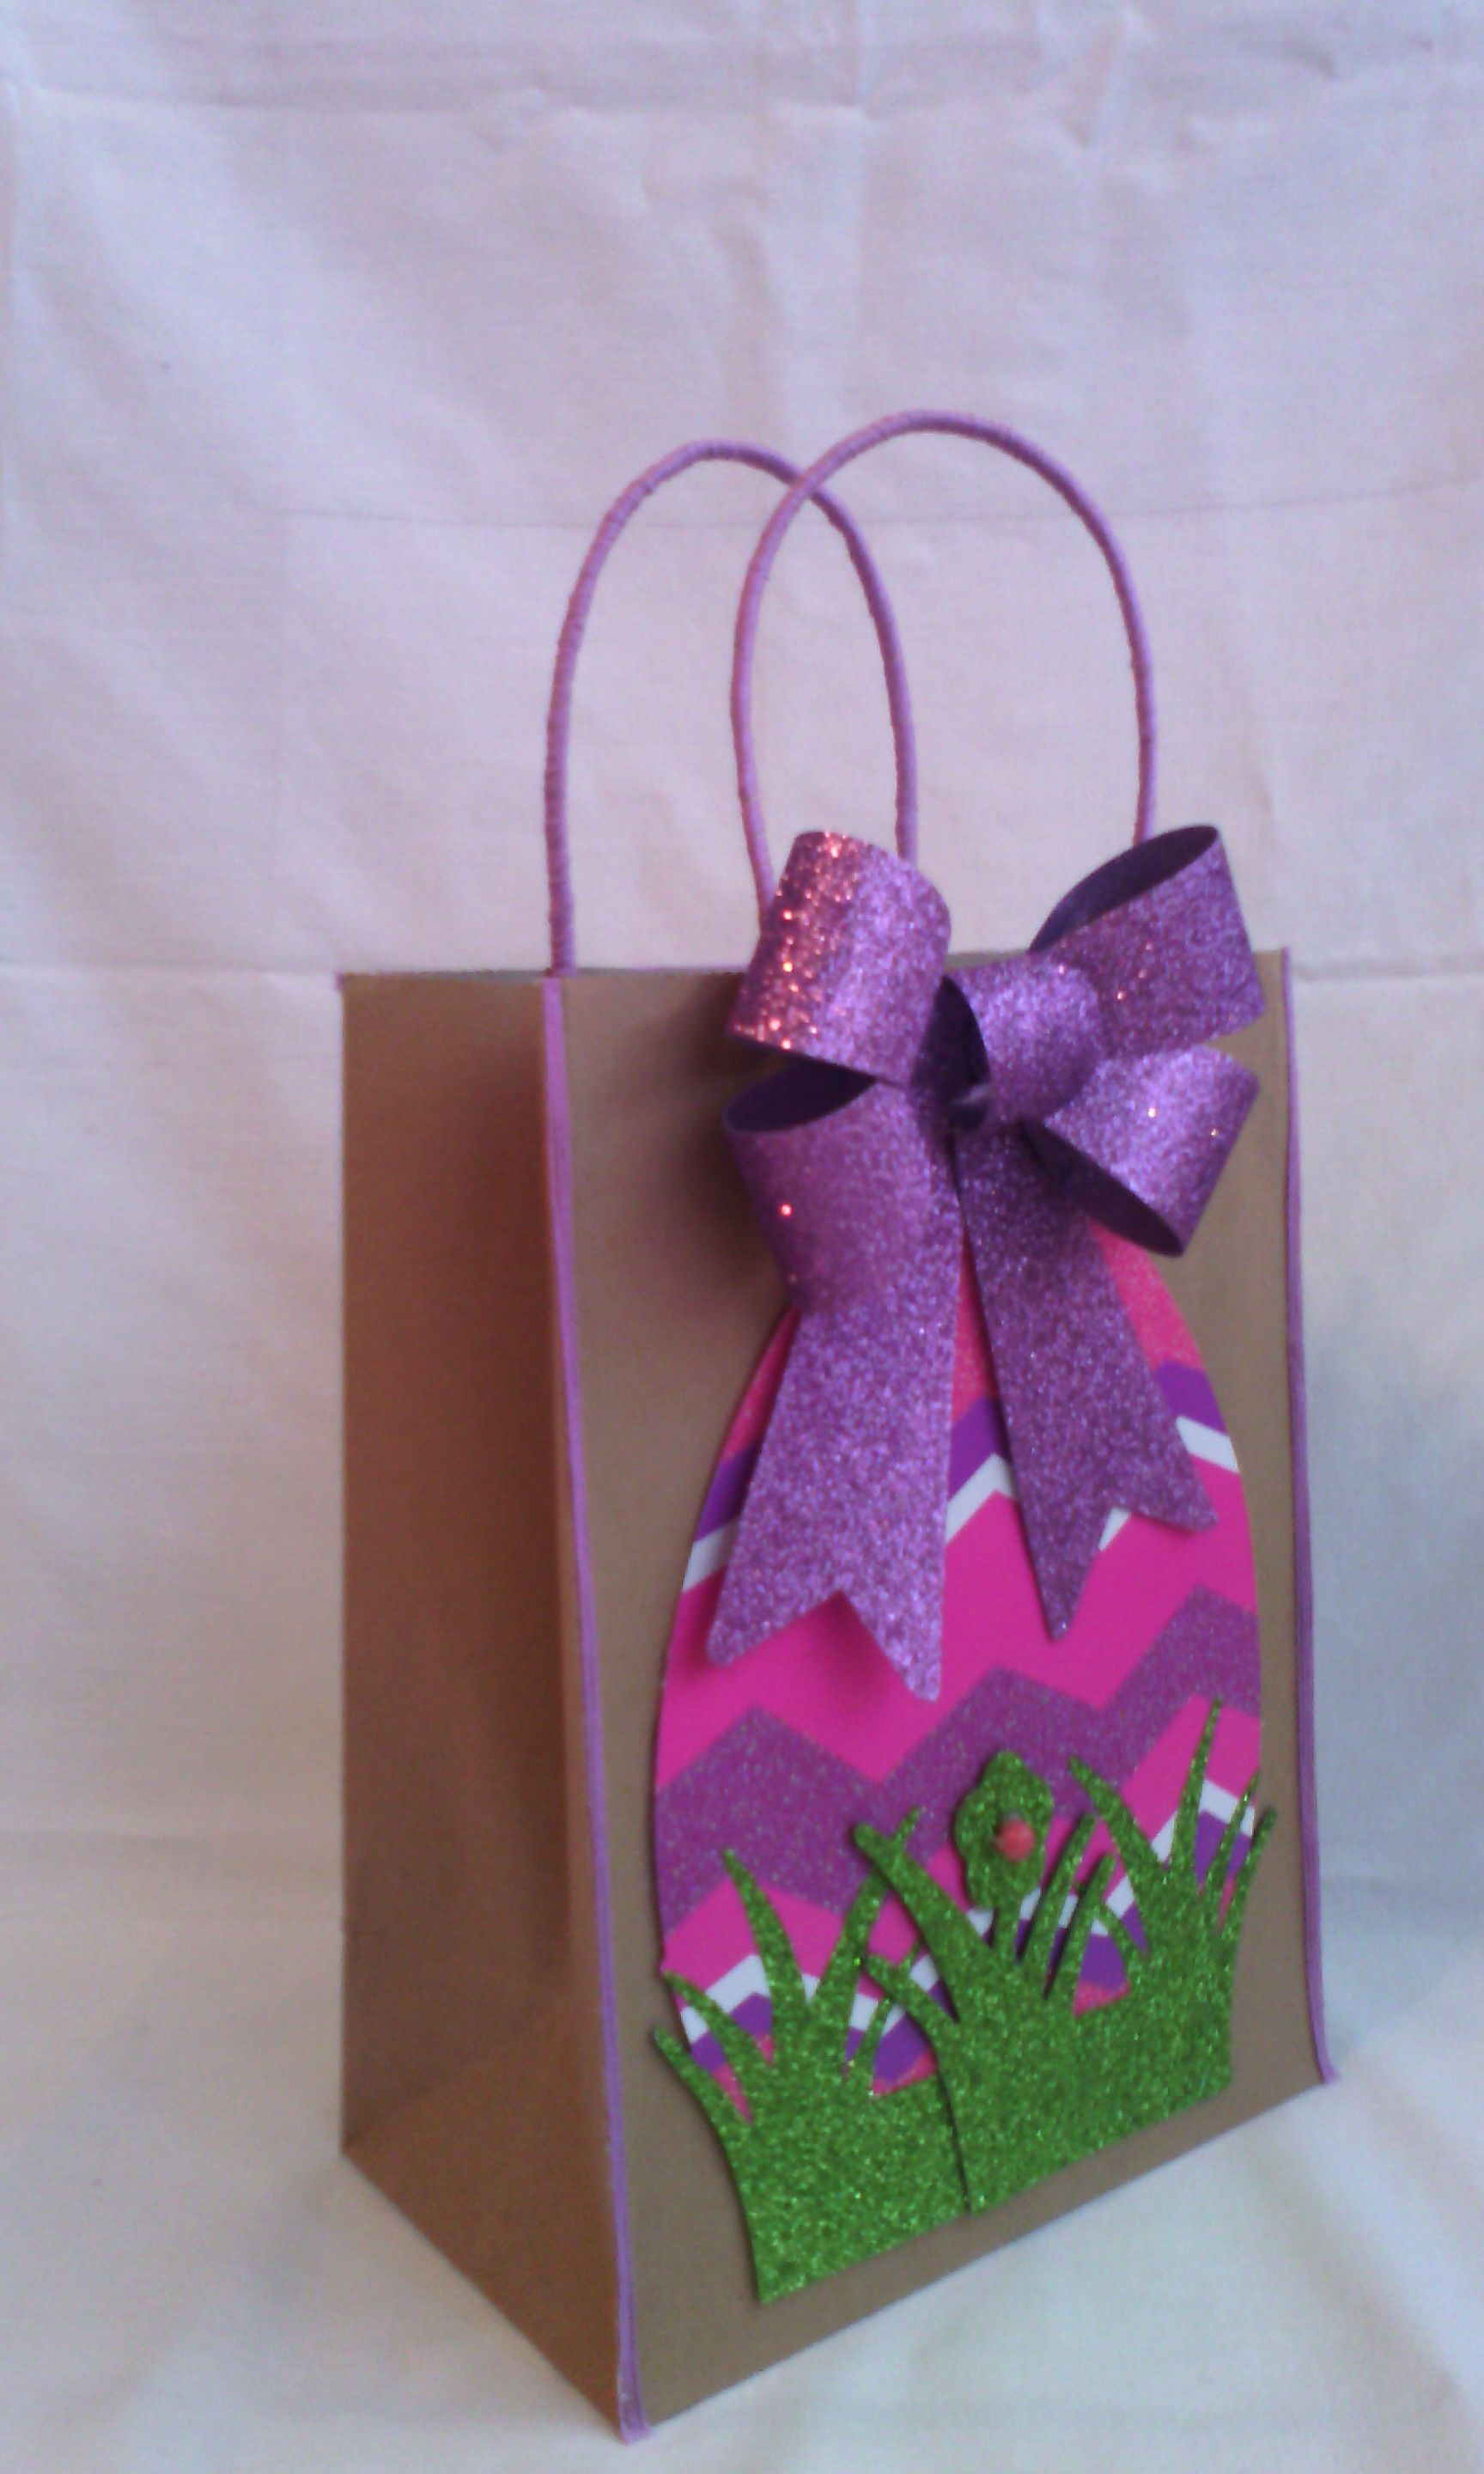 20122014 annettes royal gift wrapping handmade easter egg gift 20122014 annettes royal gift wrapping handmade easter egg gift bag wa negle Choice Image